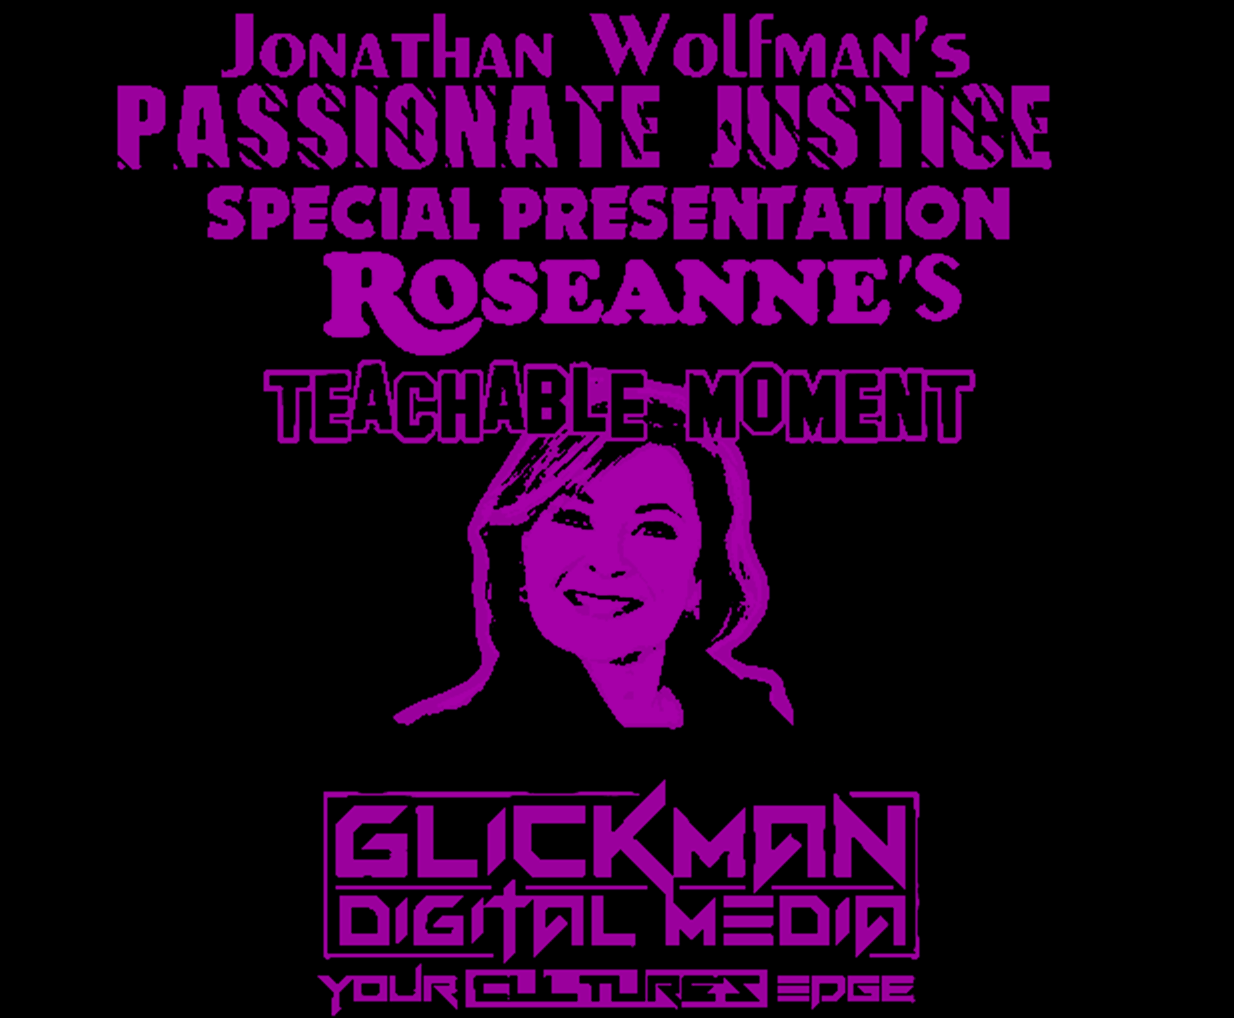 Roseanne Teachable Moment pink poster.png